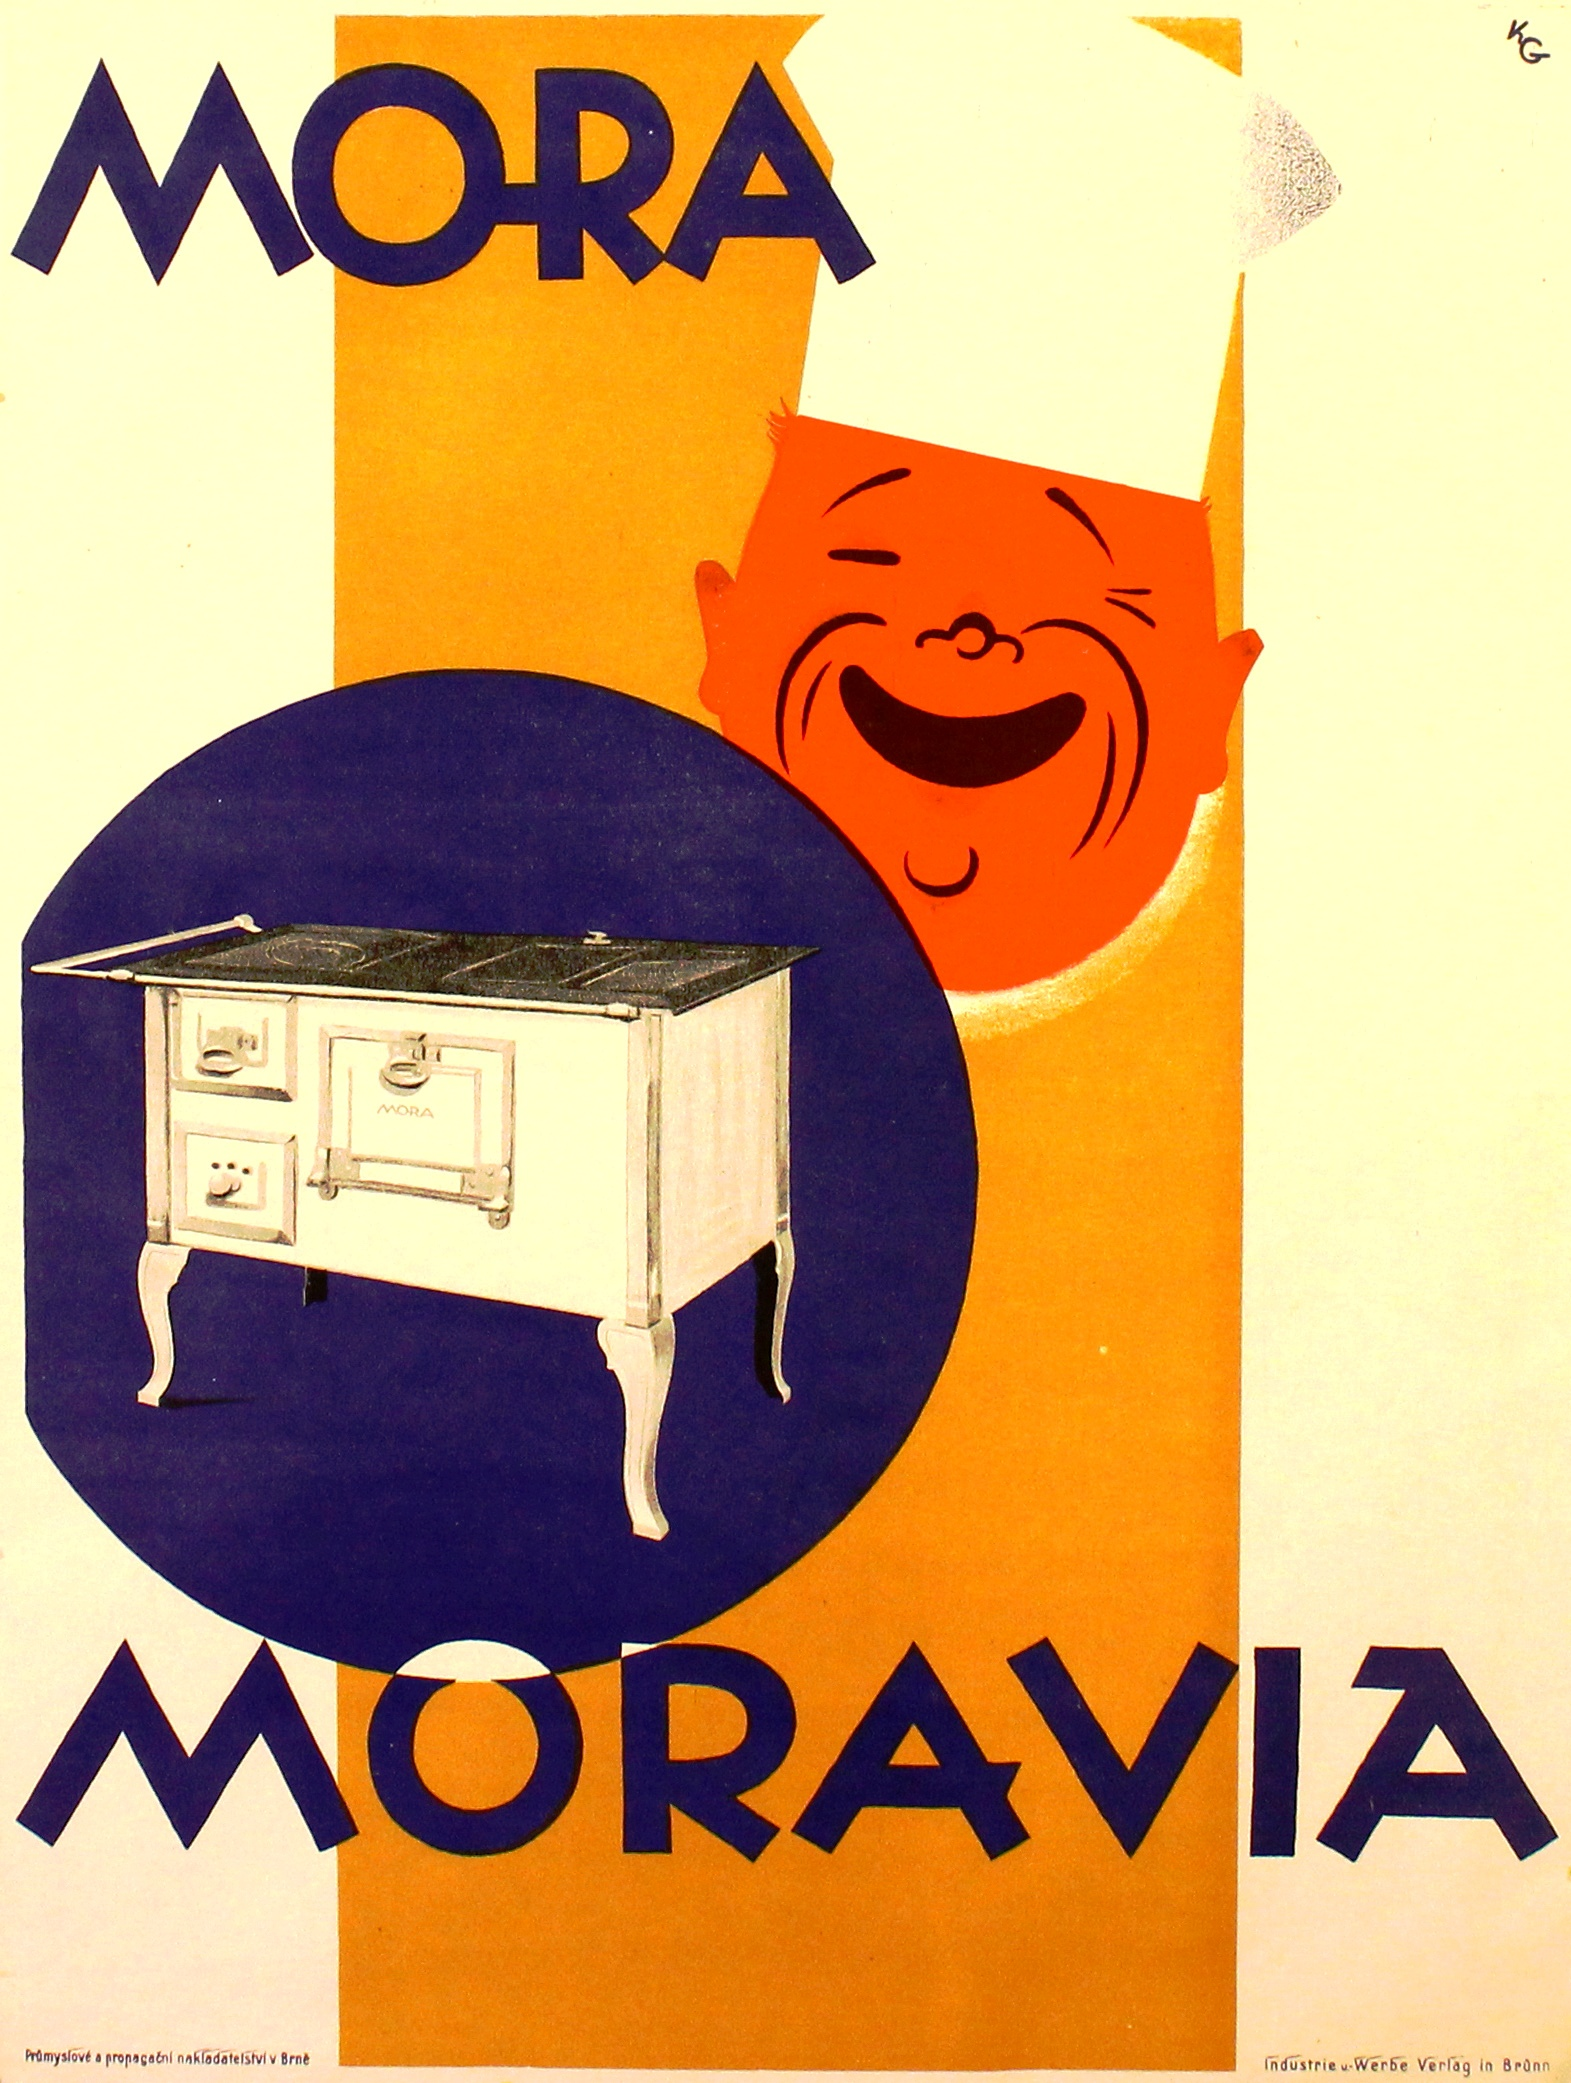 Lot 1313 - Advertising Poster Mora Moravia Cooking Stove Aga